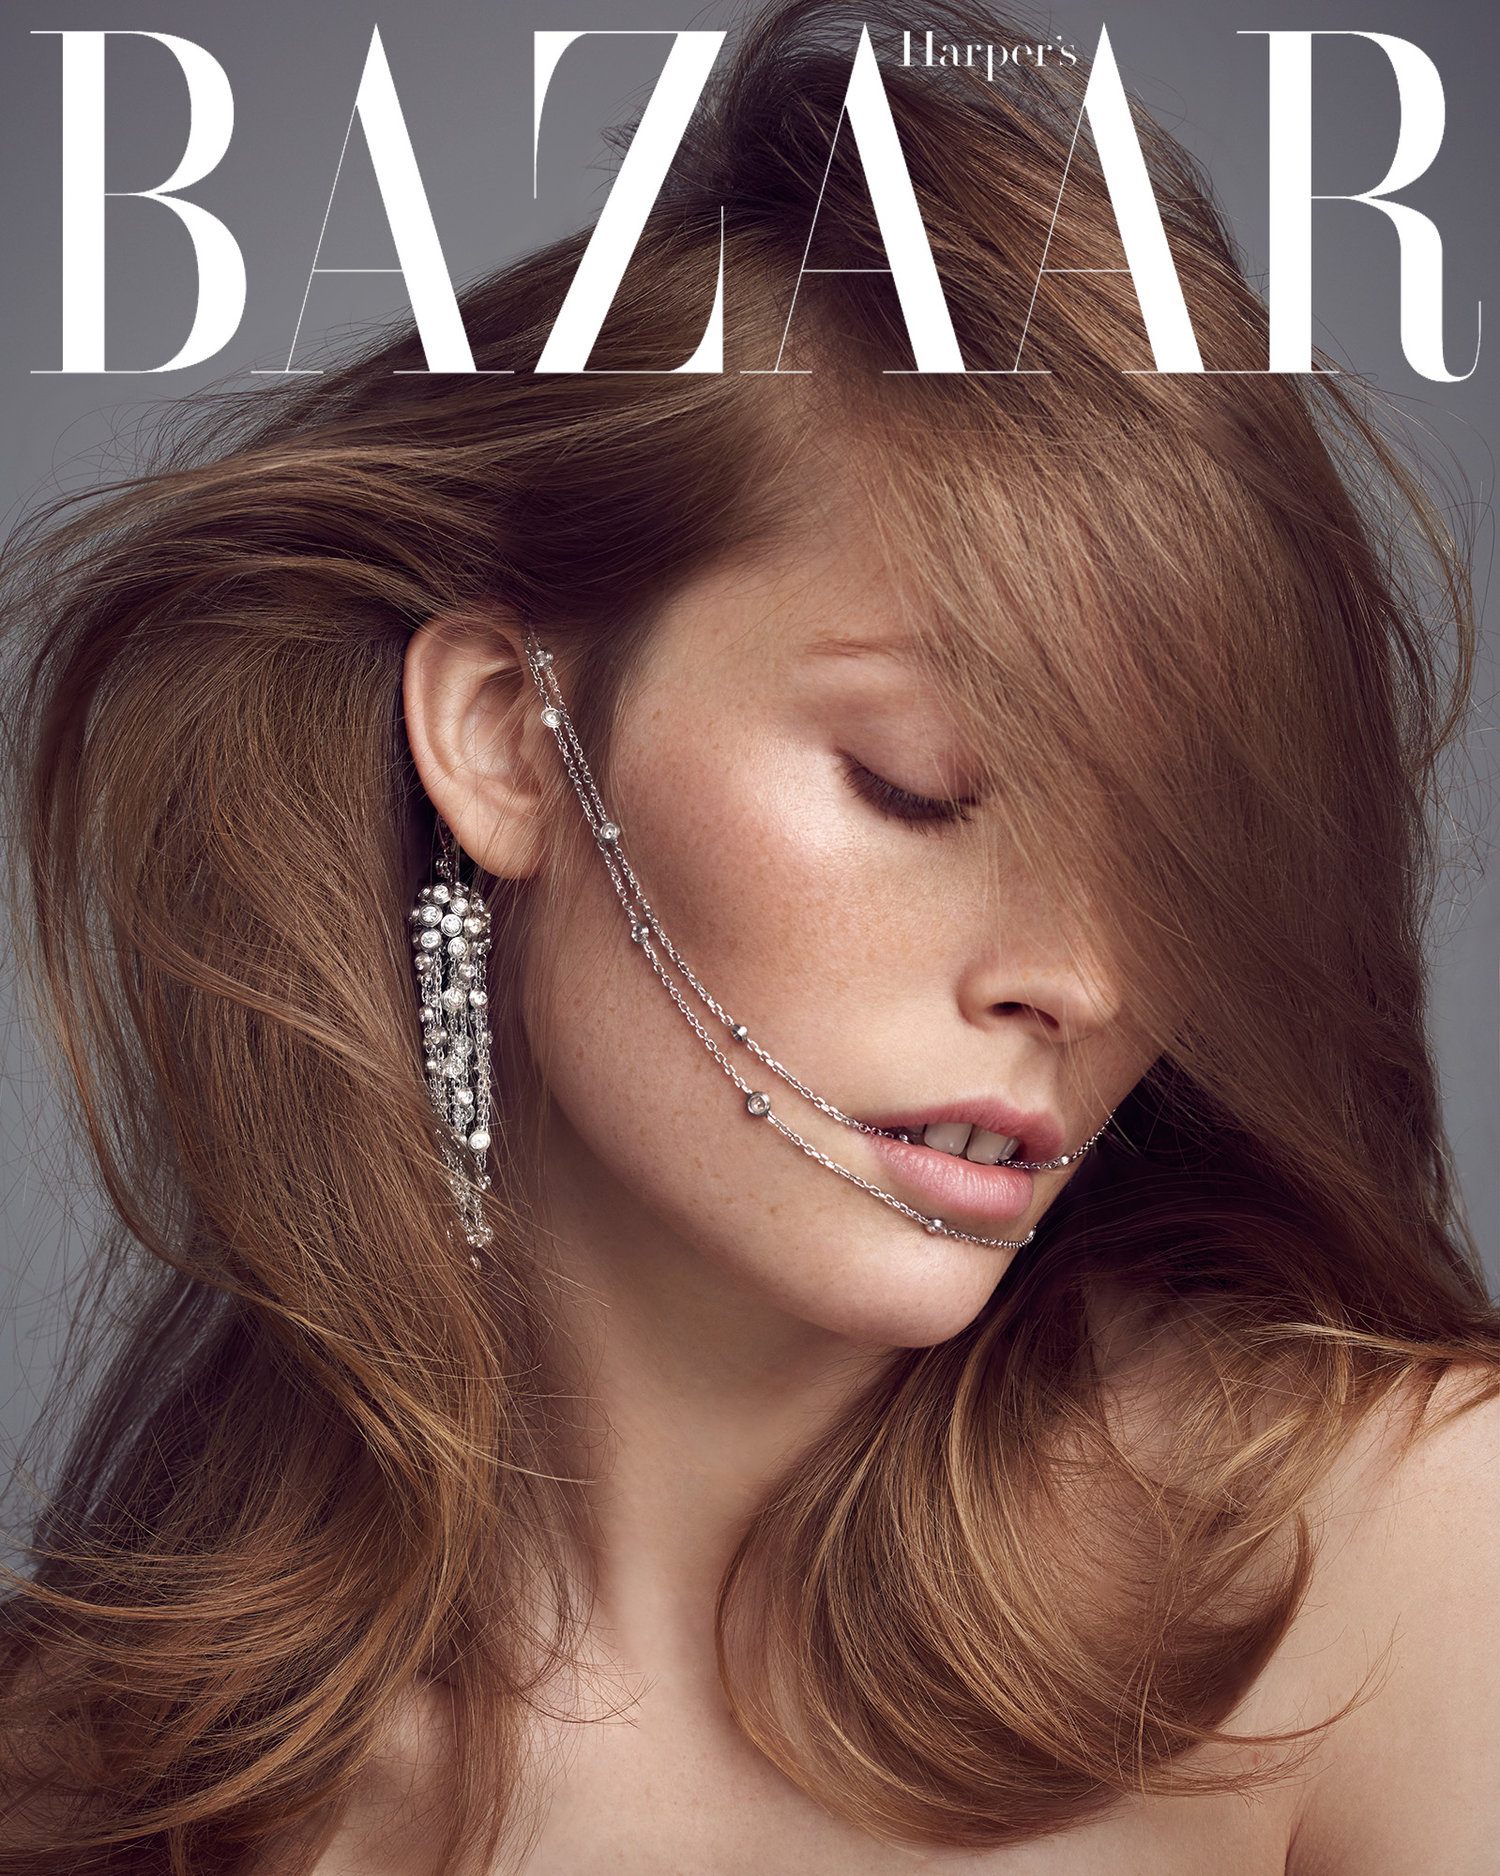 HARPER'S BAZAAR BEAUTY